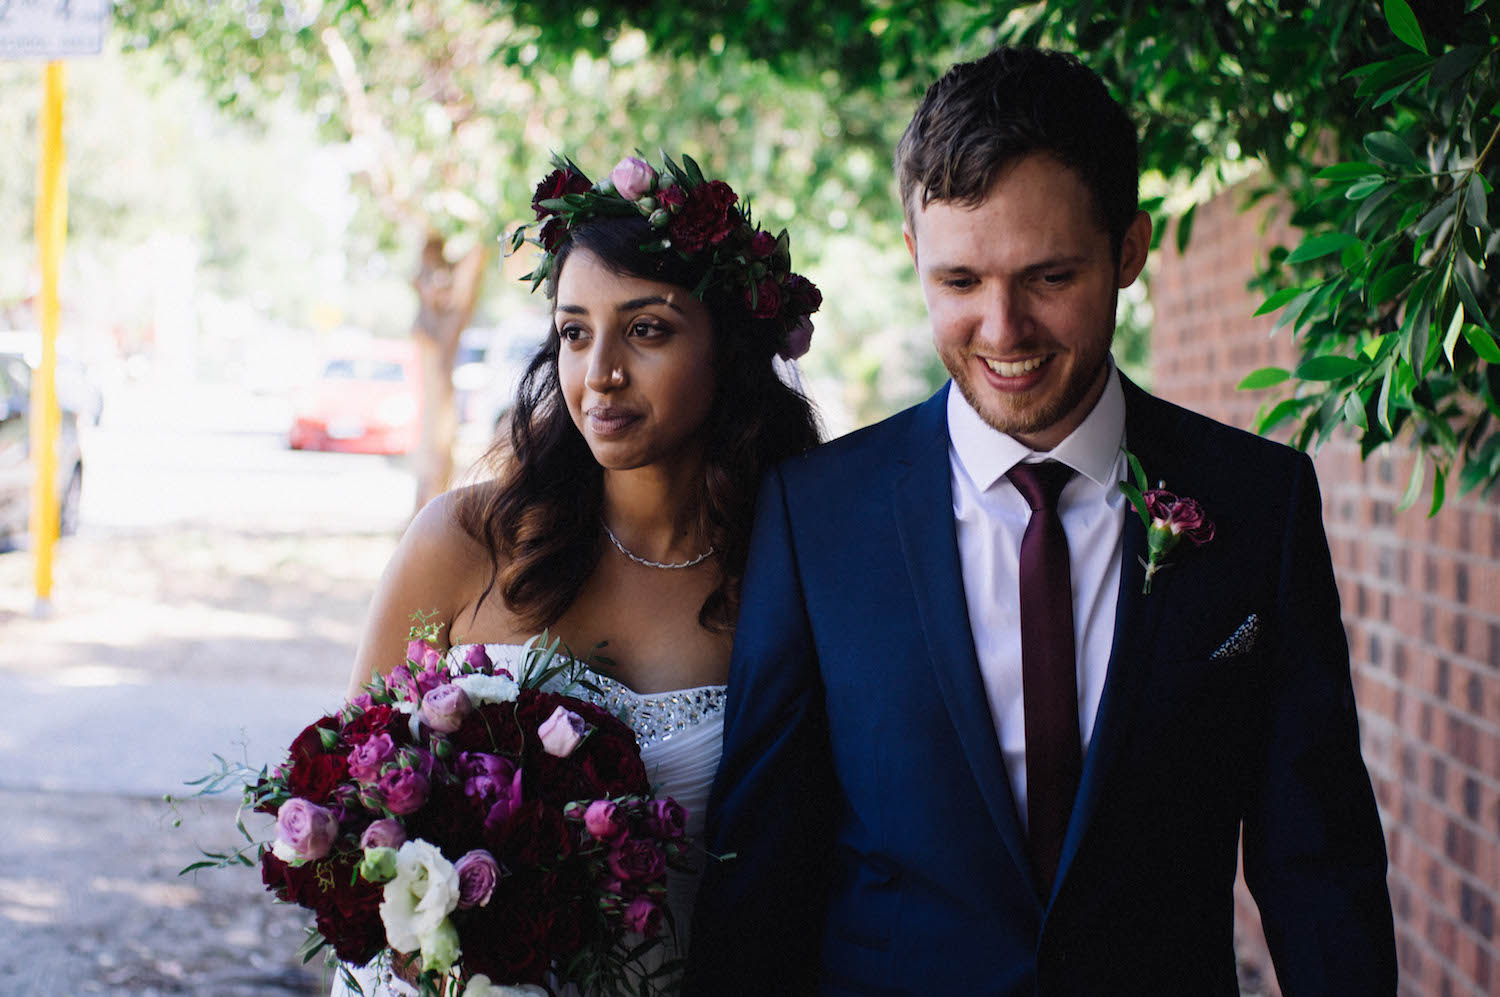 Suburban Bridal Portraits outside St Matthew's Anglican Church, Subiaco, taken by Rhianna May Destination Wedding Photographer